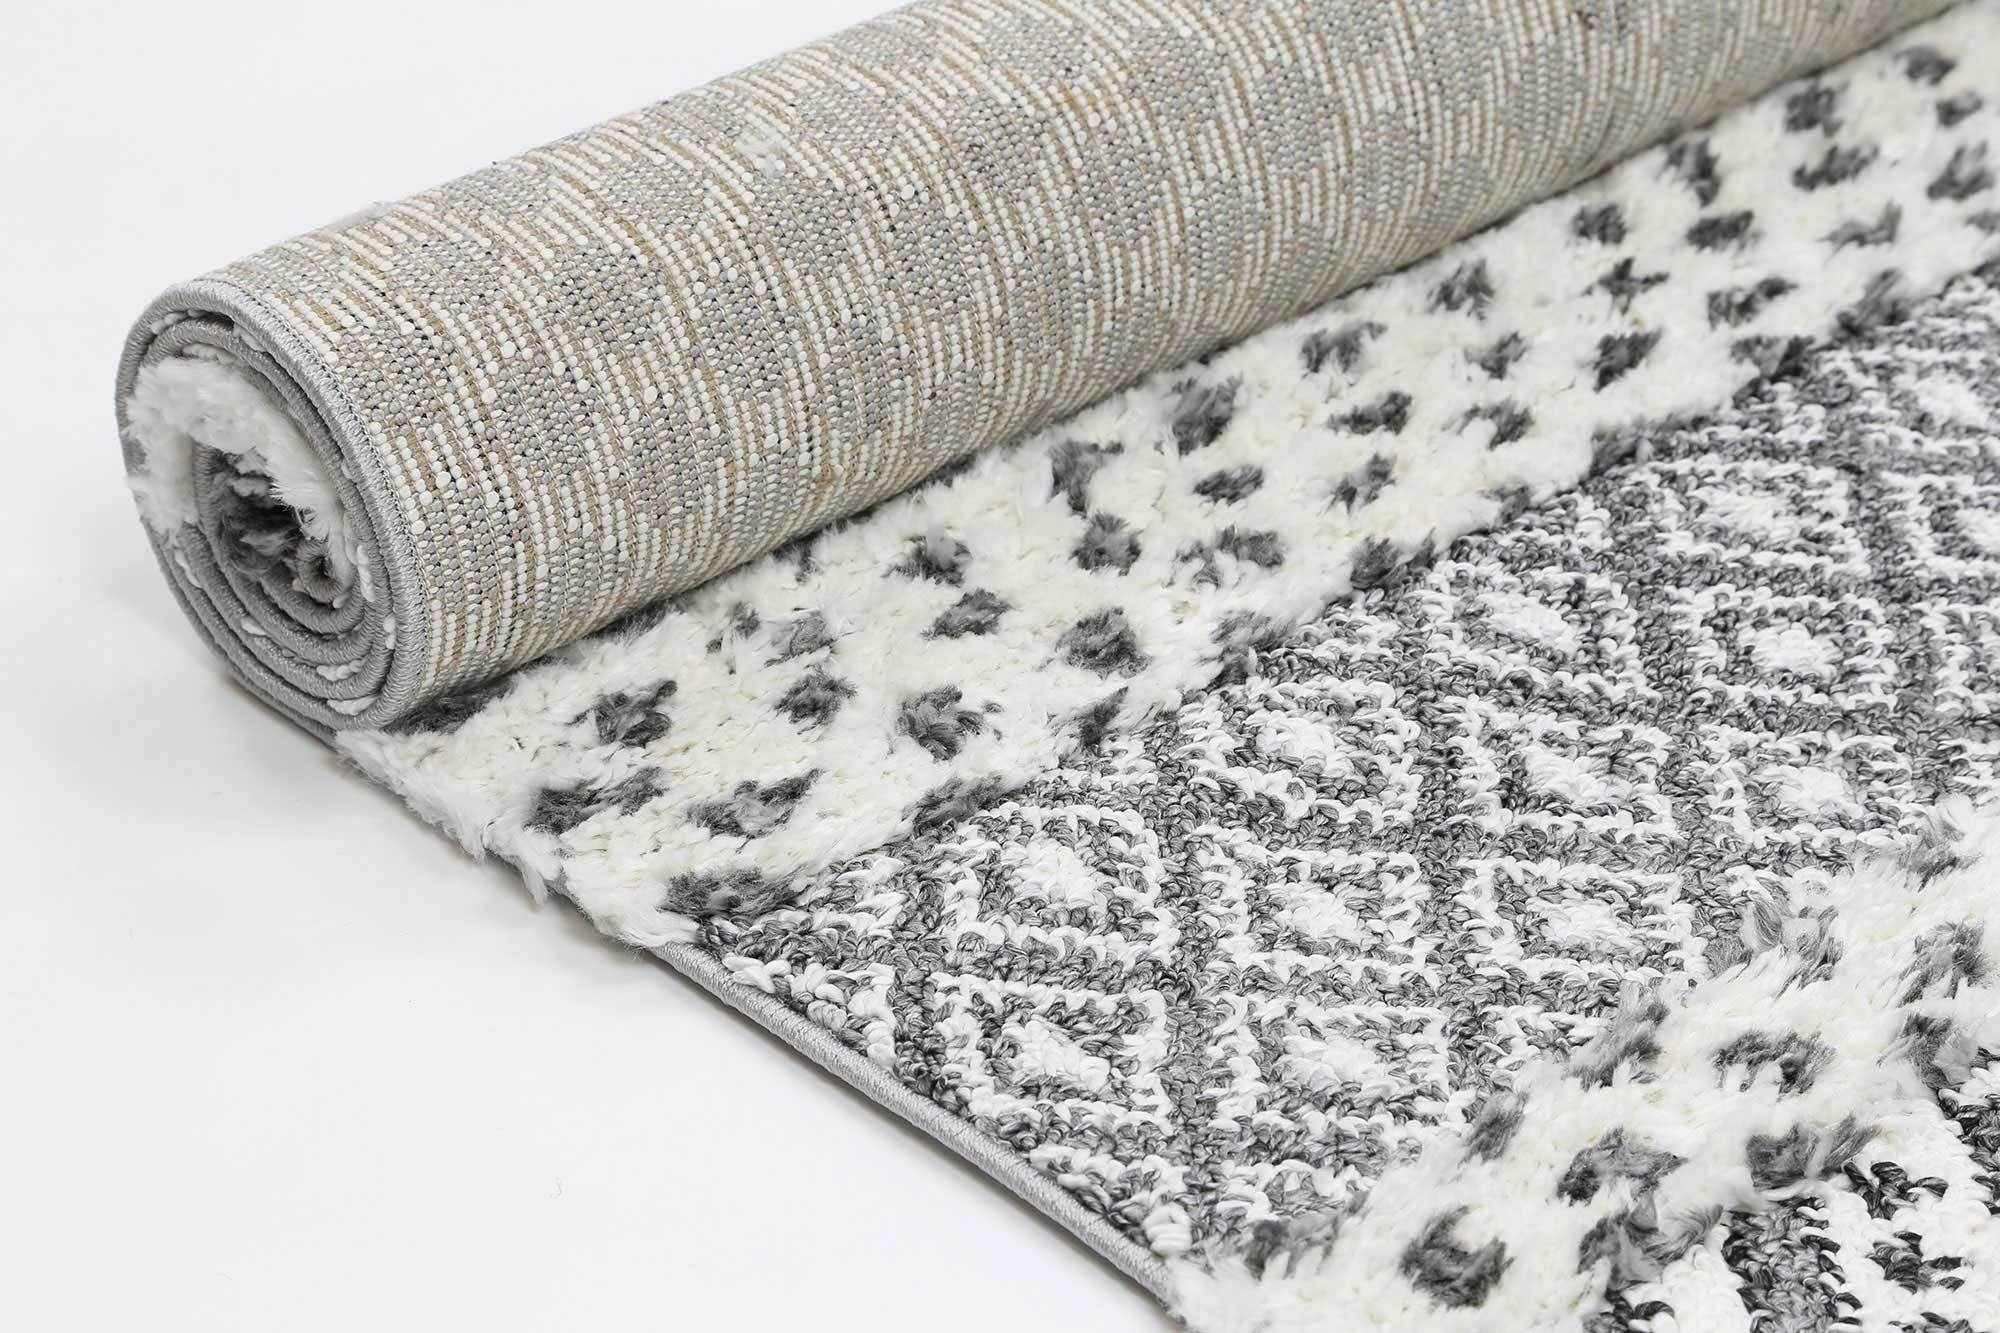 Eternity Mono Tribal Edge Cream Anthracite - The Rugs